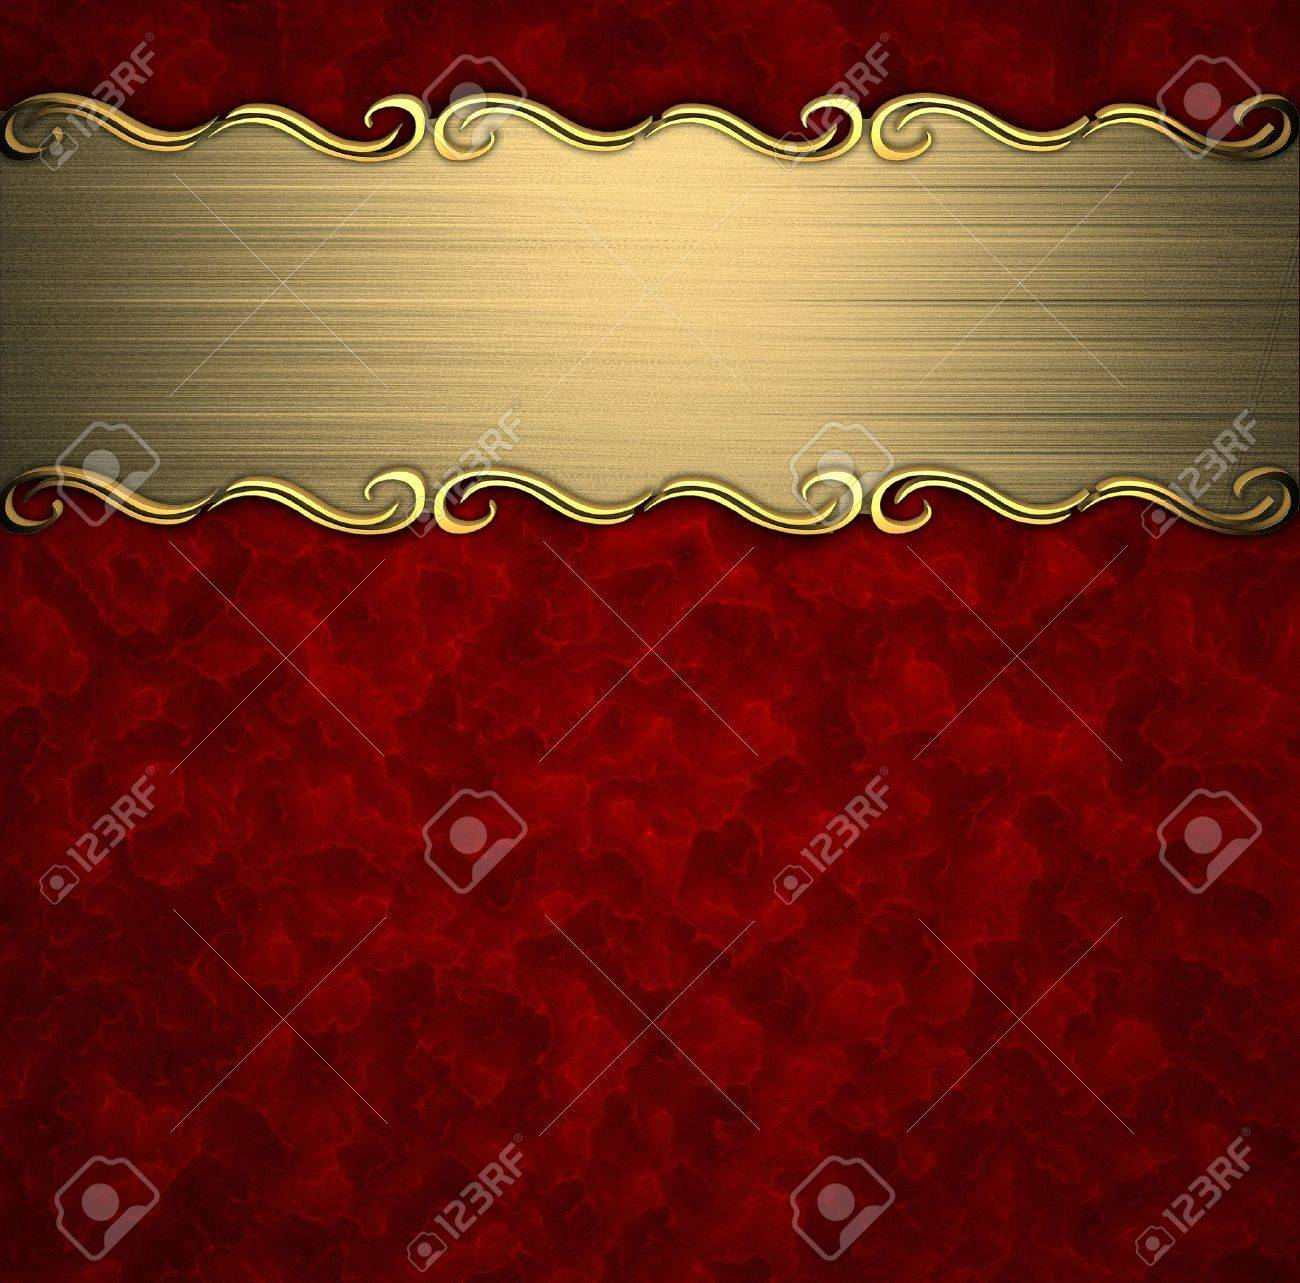 Beautiful pattern on a gold plate on a red background Stock Photo - 14124678